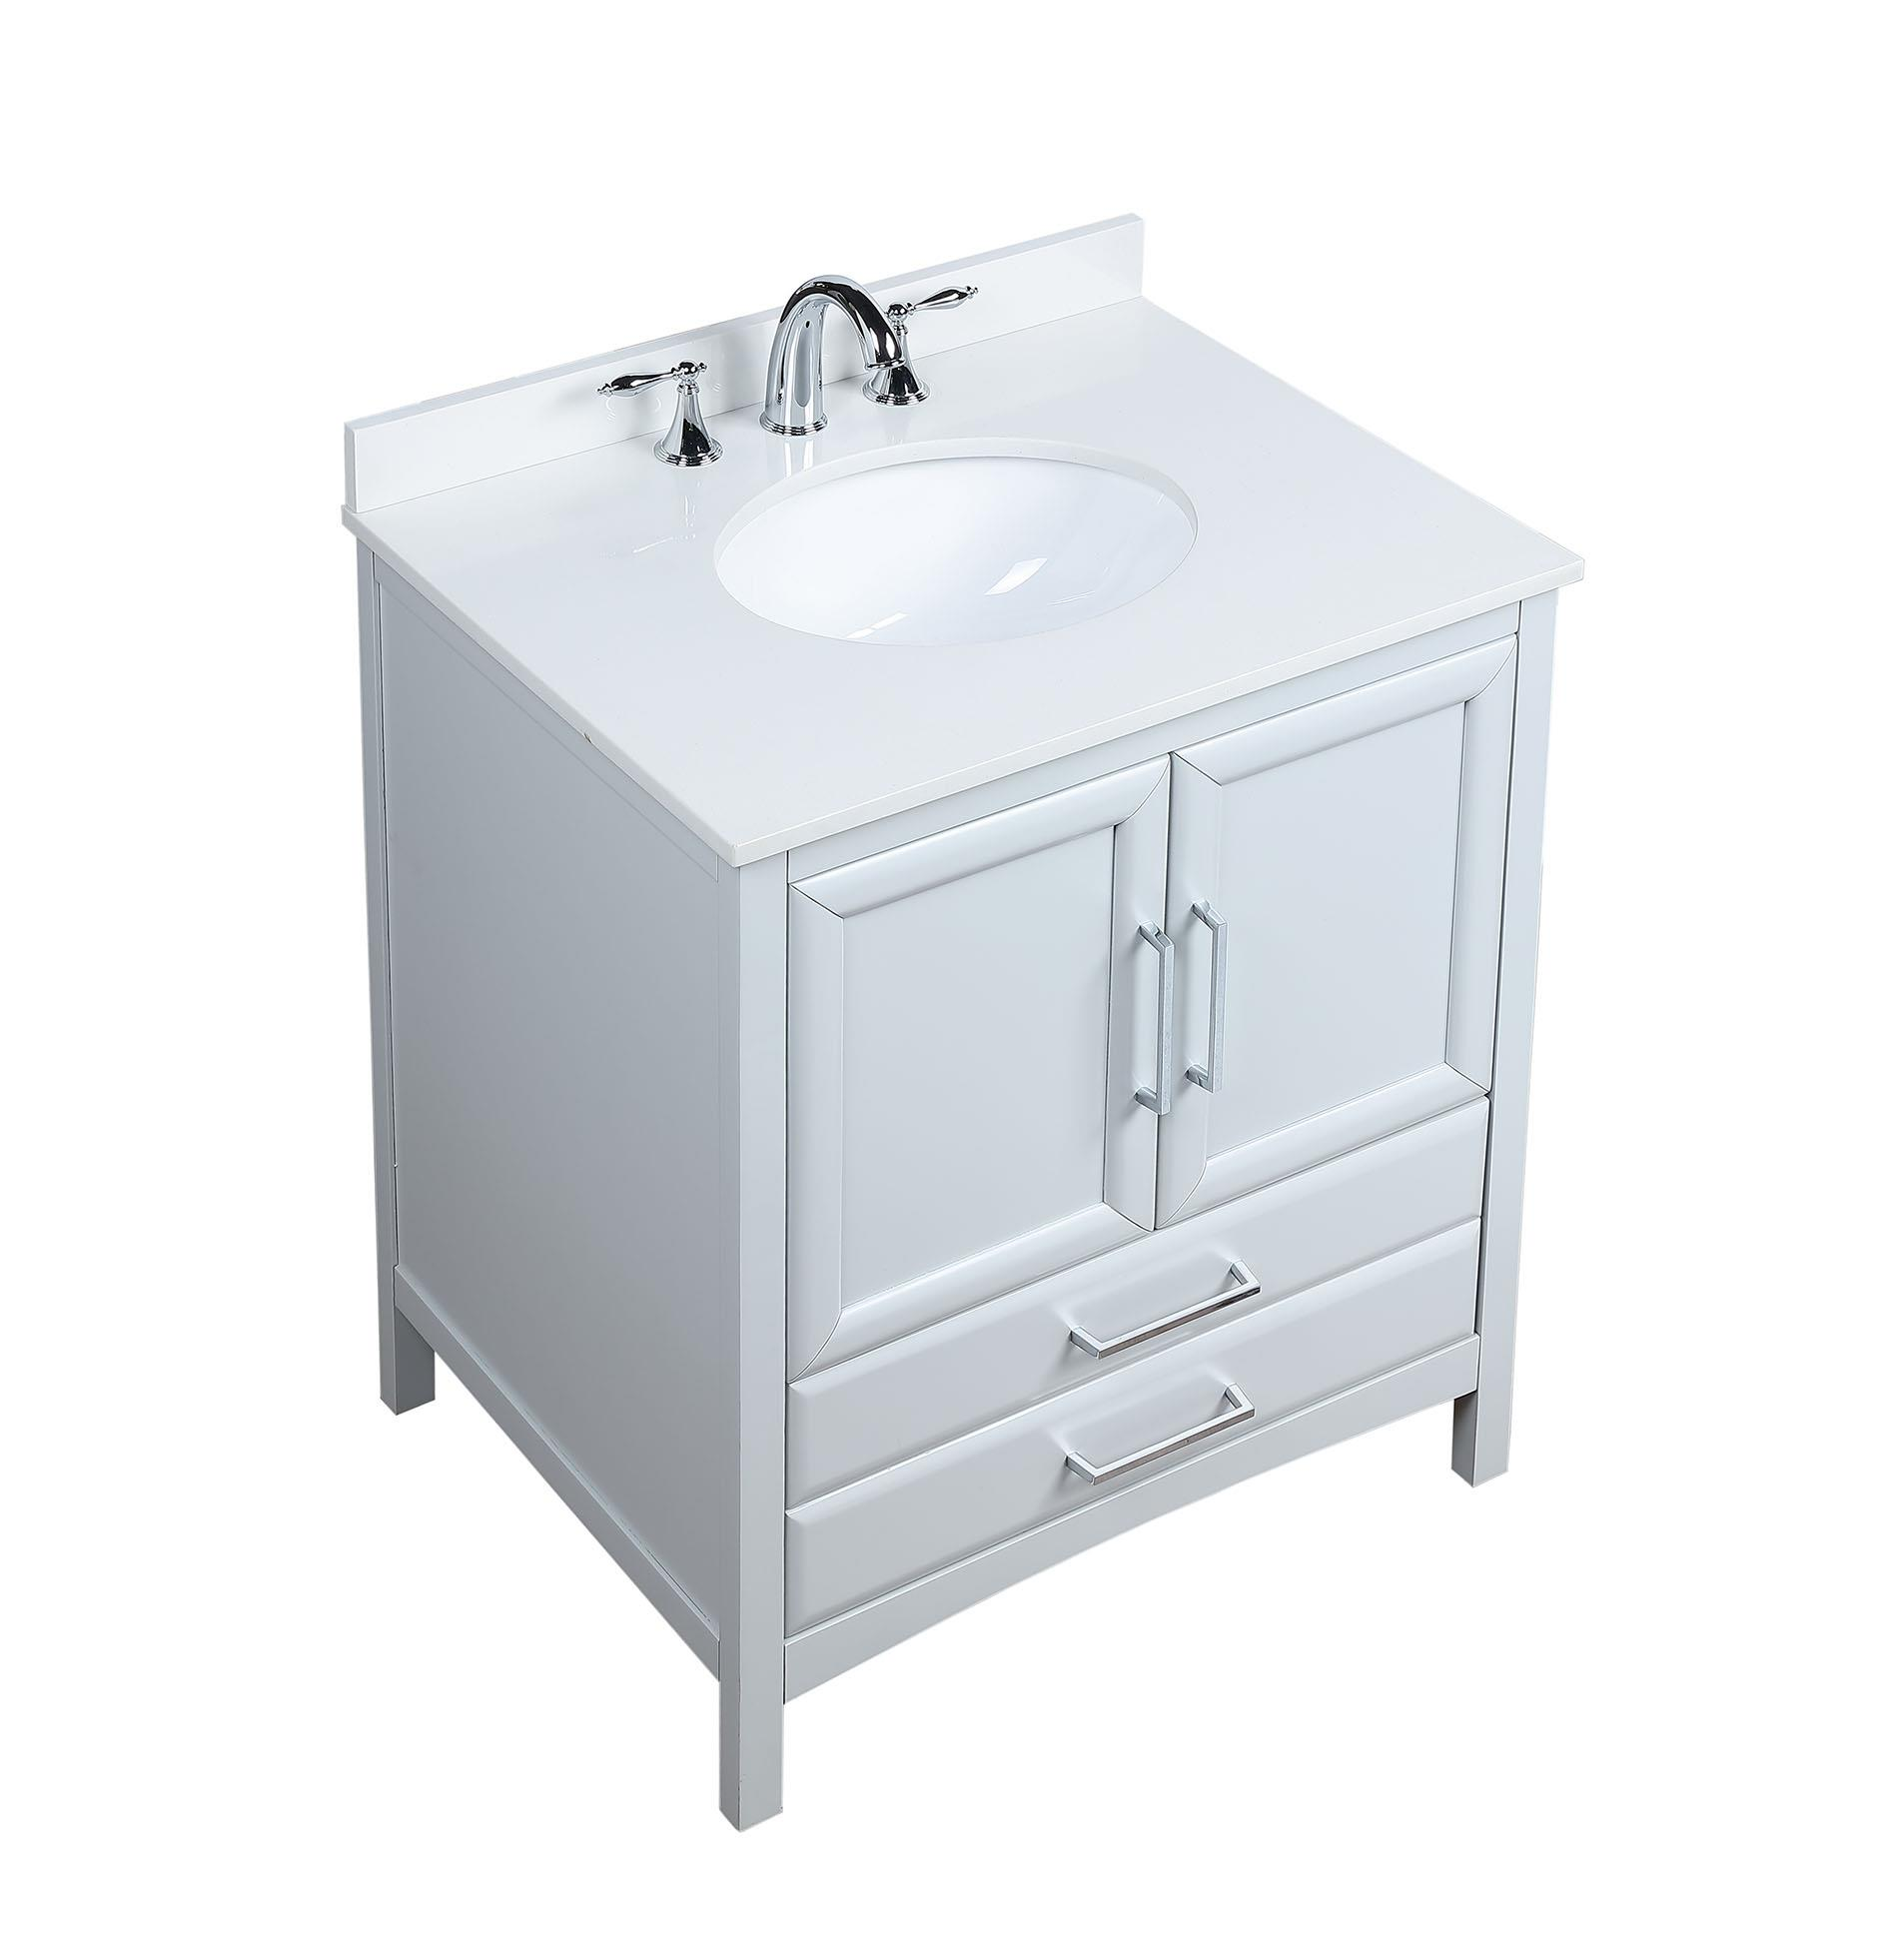 Vanity Art 30 Inch Single Sink Bathroom Vanity Set With Cultured